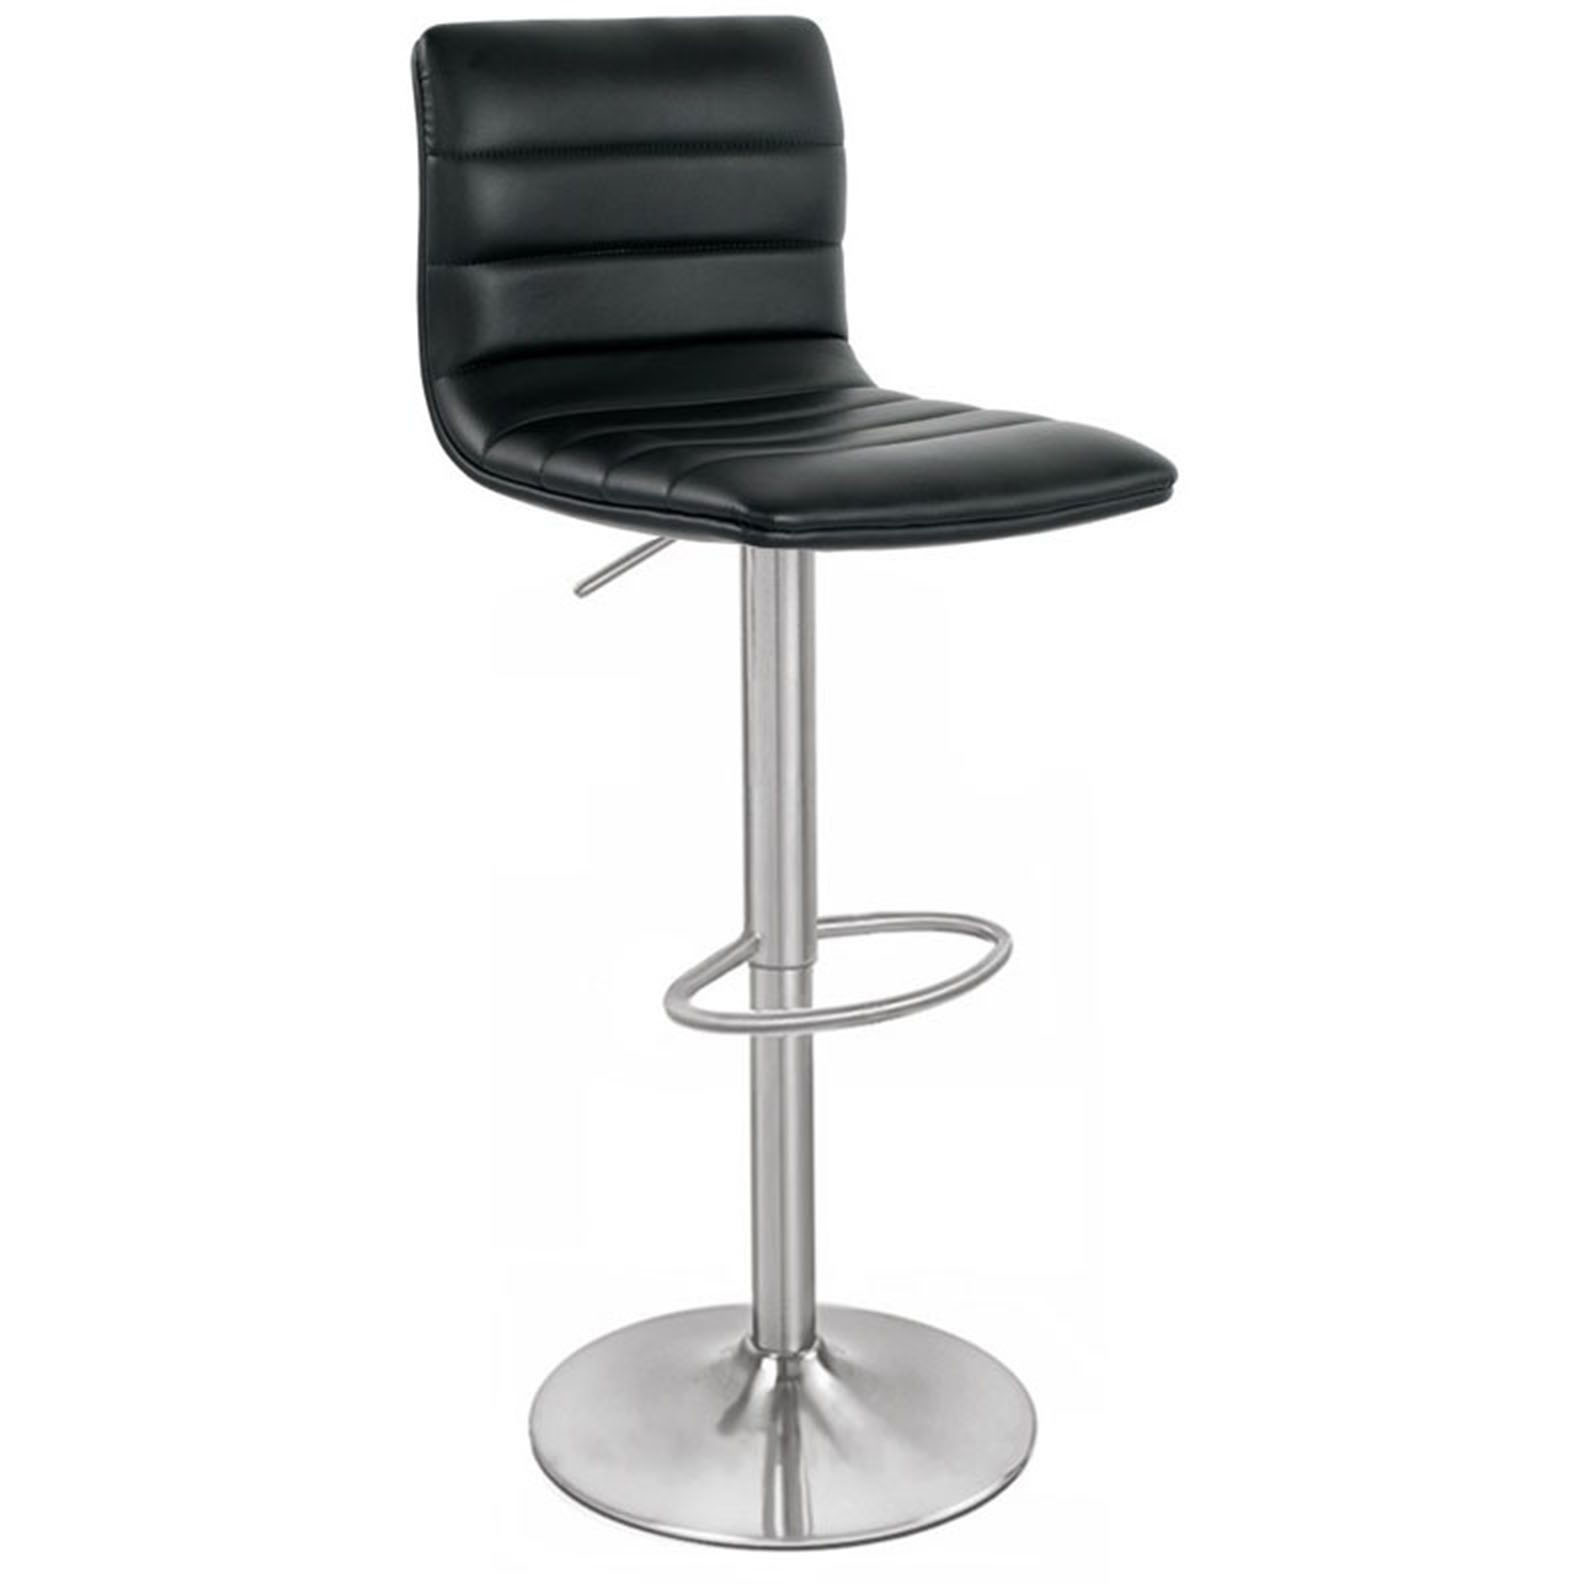 Black Kitchen Bar Stools Uk: Black Size: X 390mm X 390mm